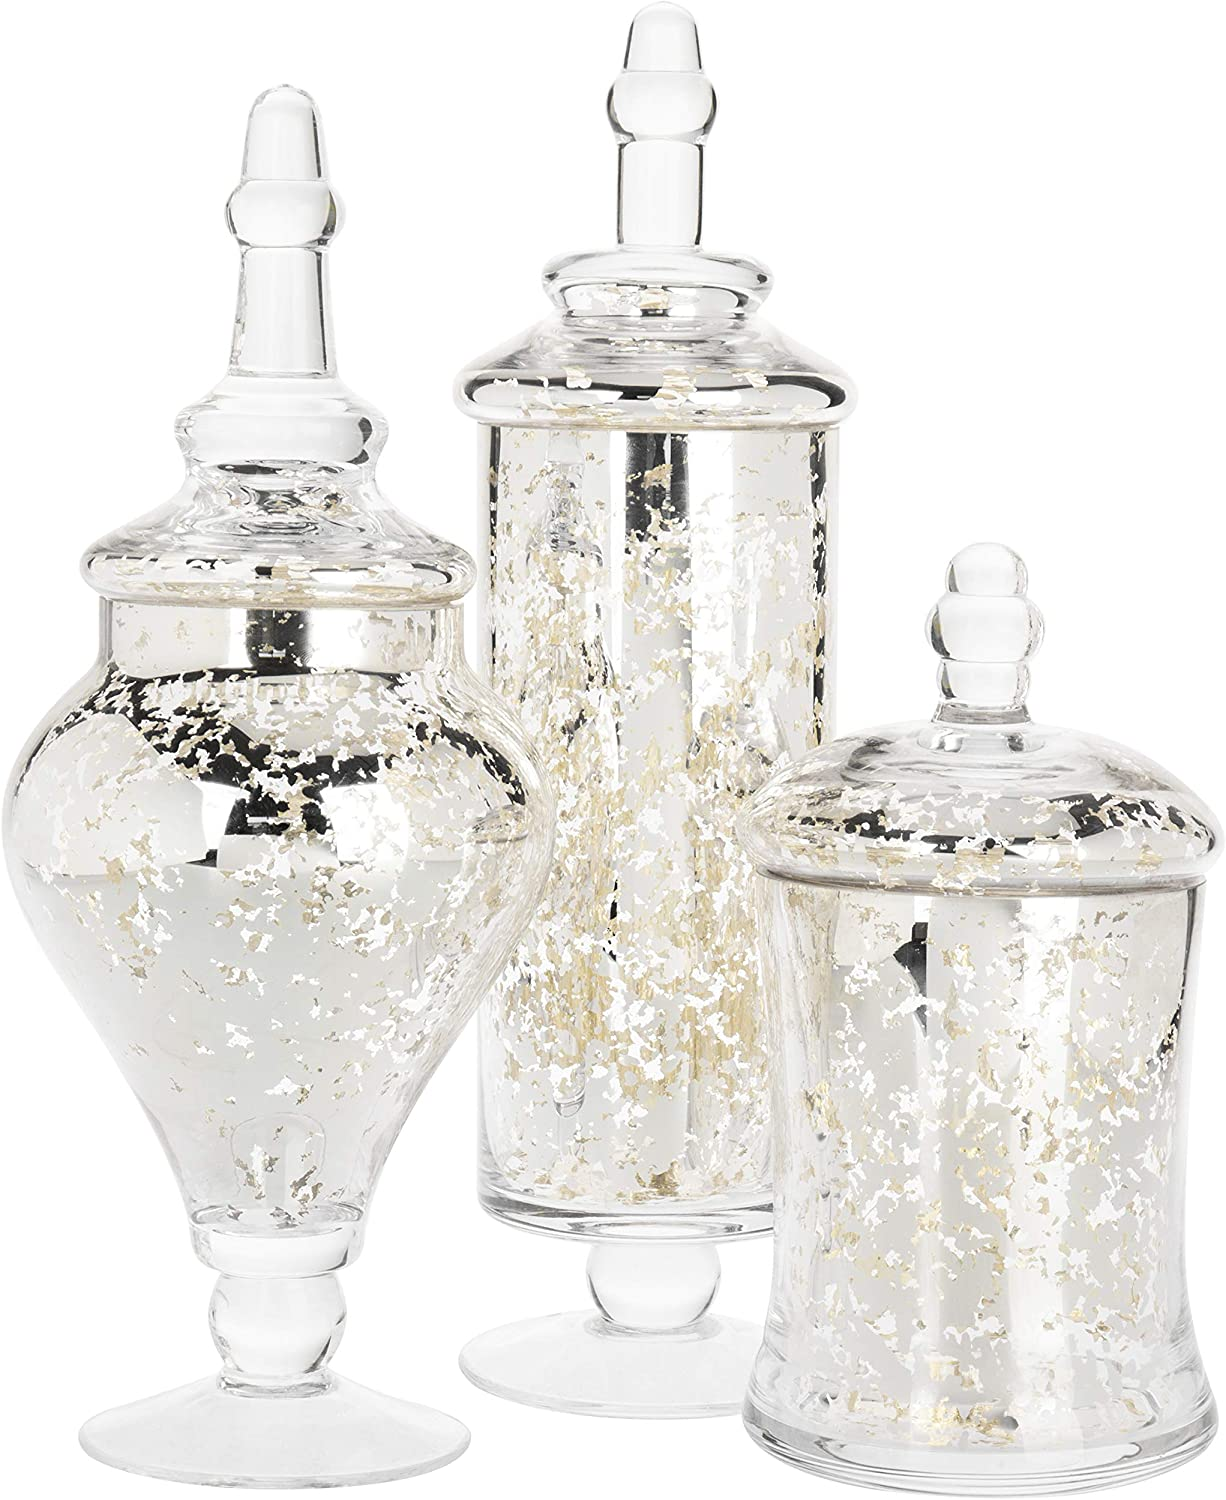 MyGift Set of 3 Silver Mercury Chicago Popularity Mall C Jars Weddings Apothecary Glass